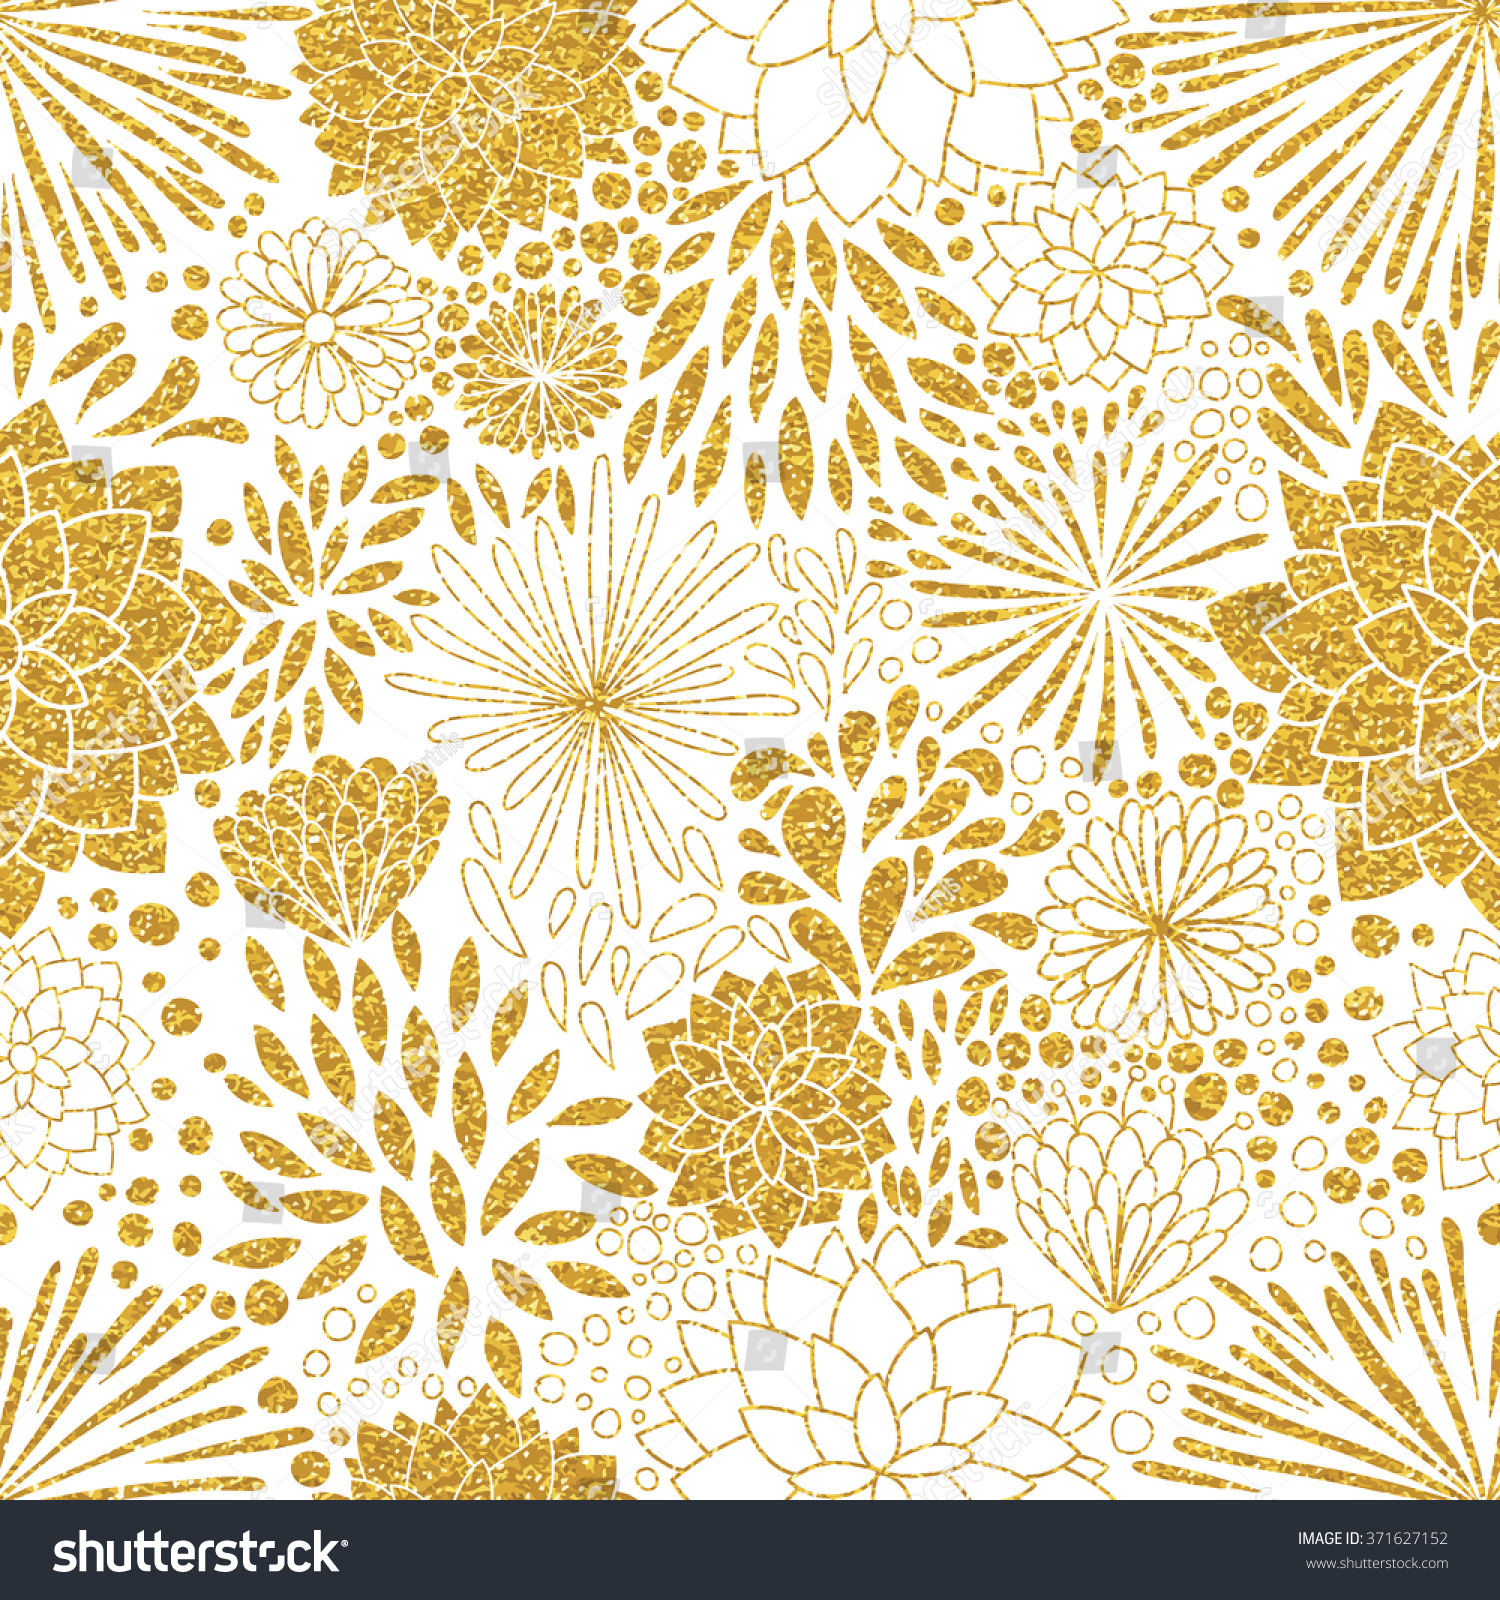 download textures gold floral - photo #12